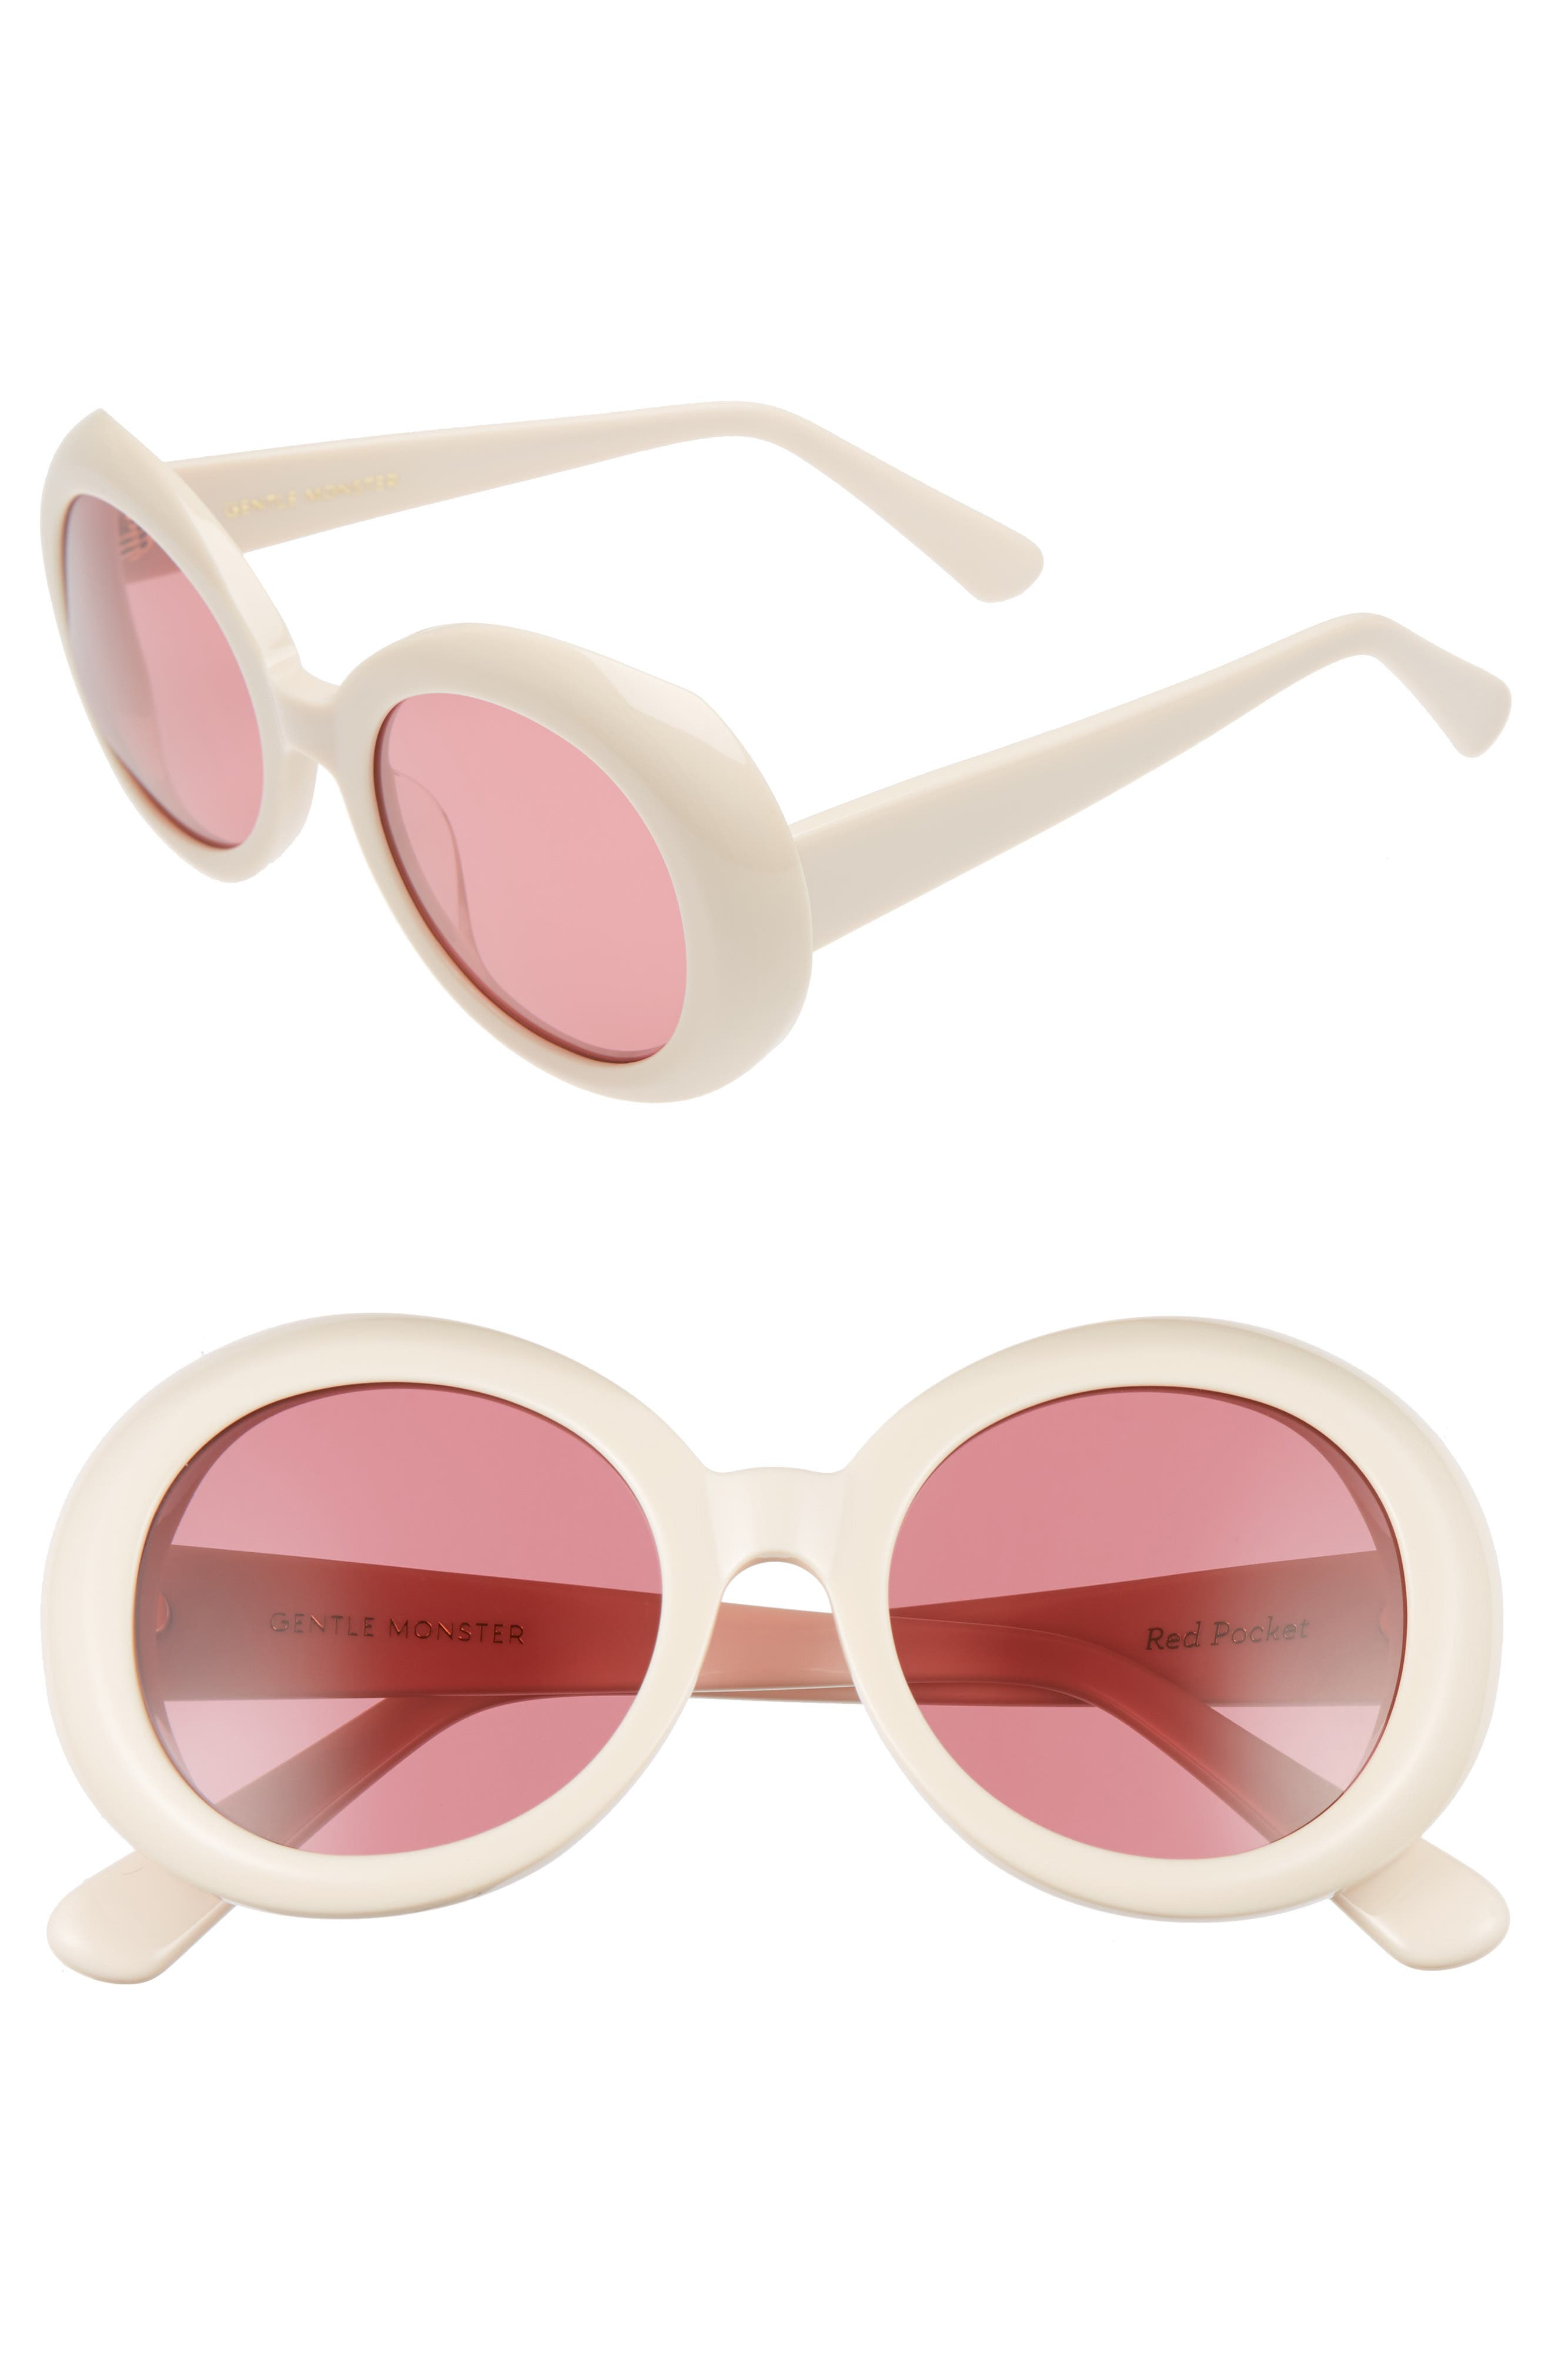 Alternate Image 1 Selected - Gentle Monster Red Pocket 52mm Round Sunglasses